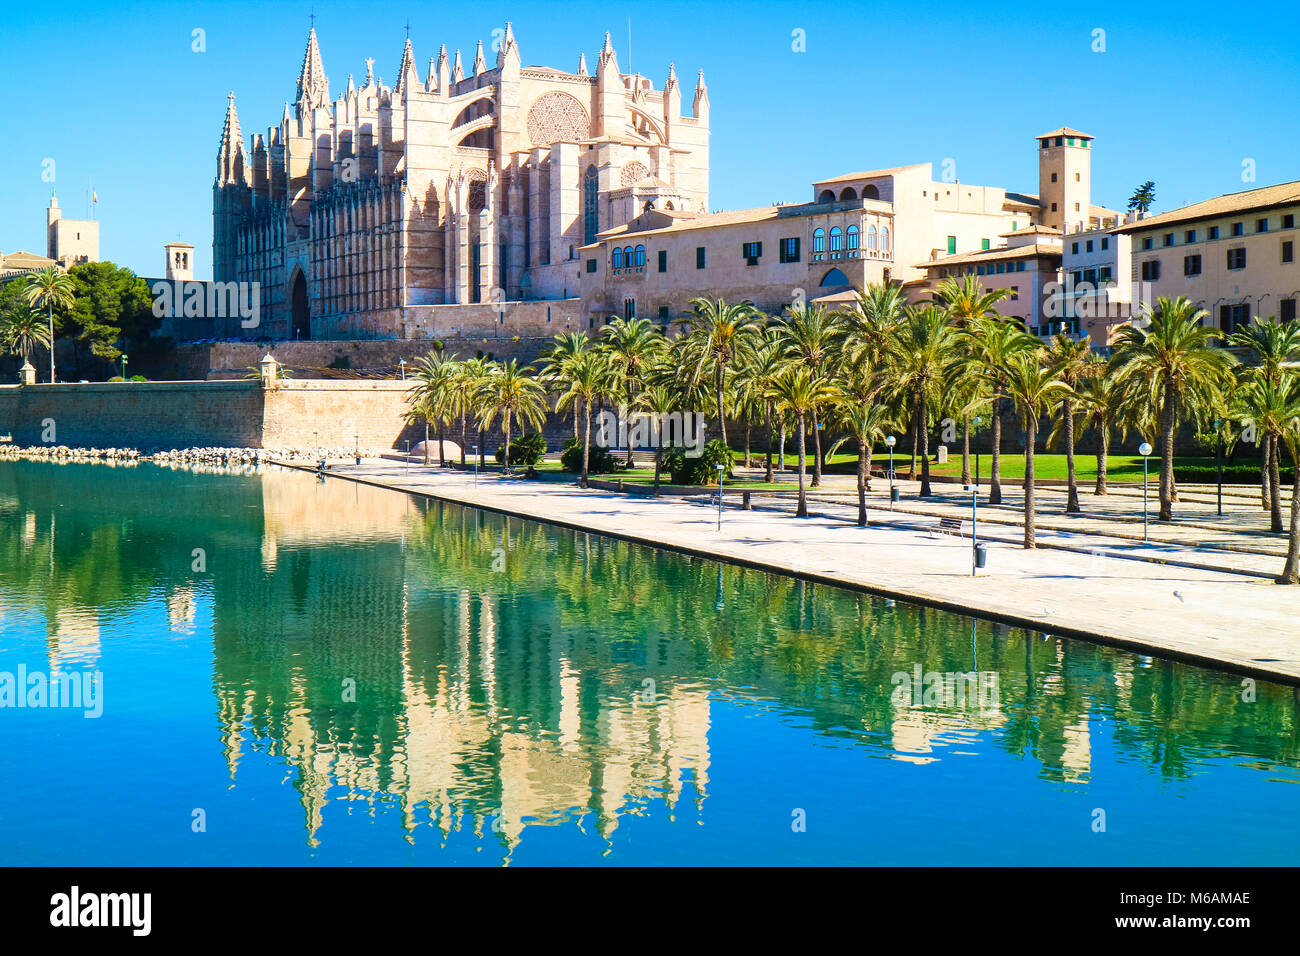 La Seu - the famous medieval gothic catholic cathedral. Palma de Mallorca, Spain. Water reflection. - Stock Image